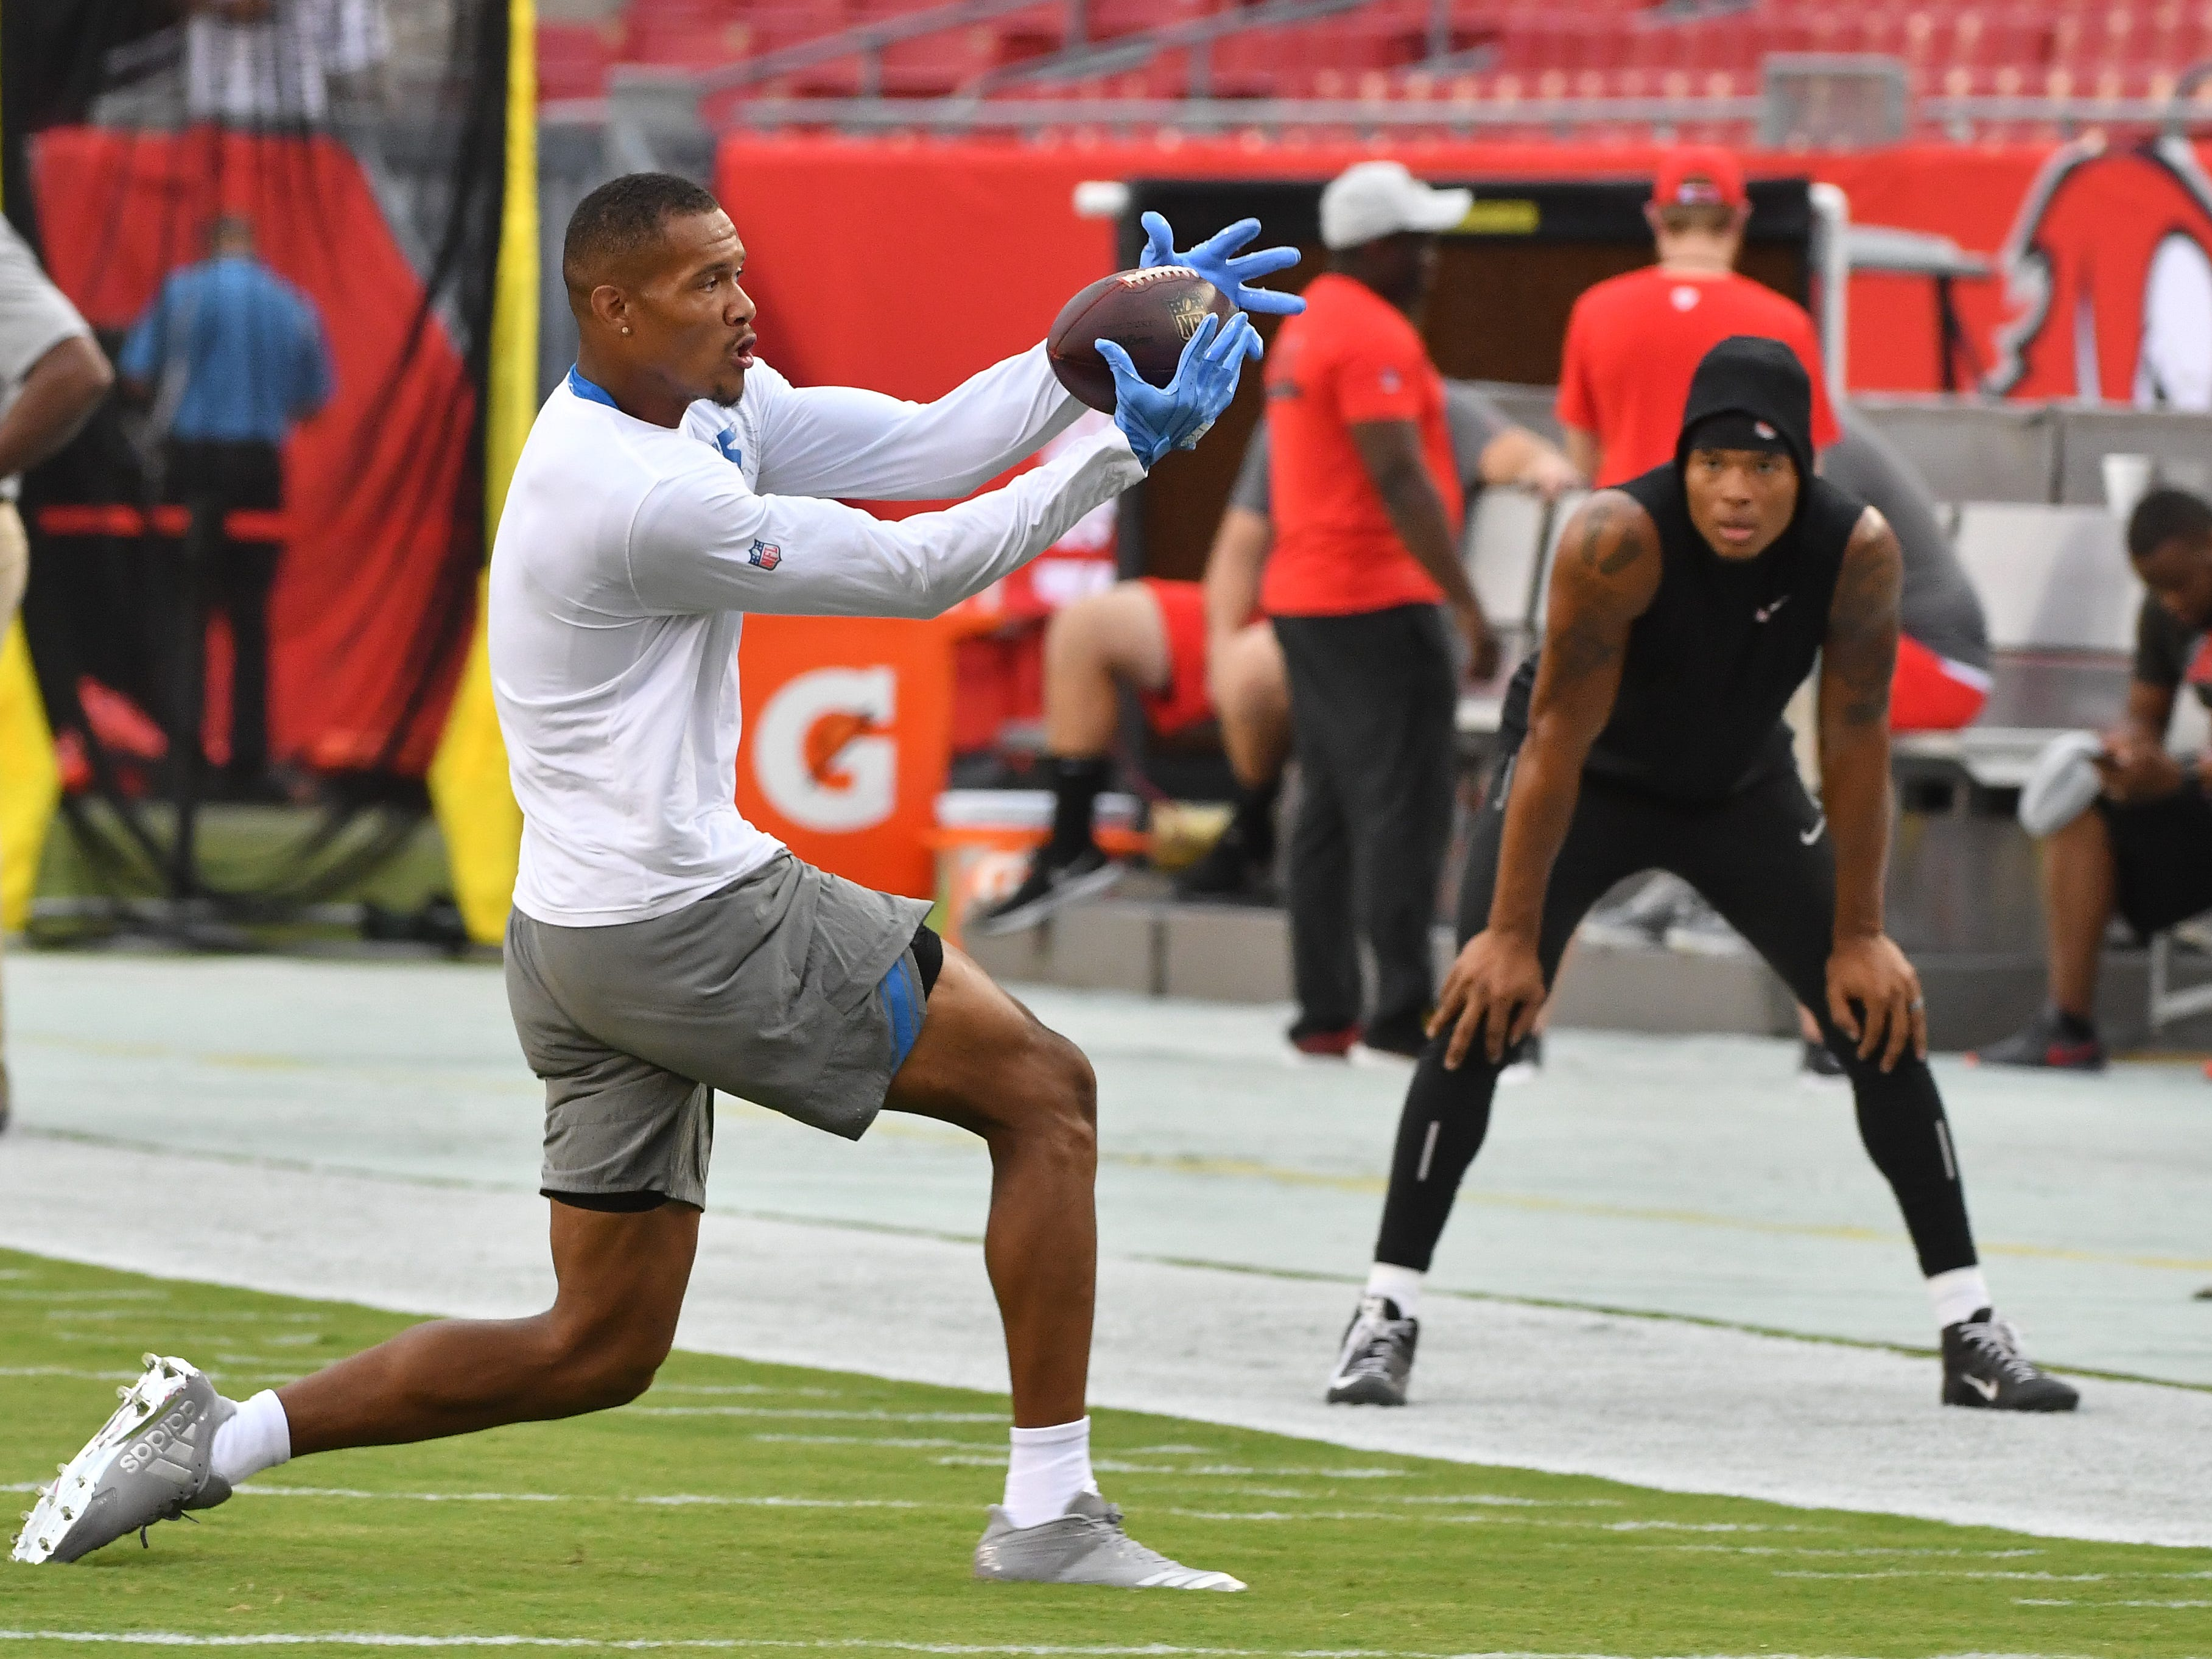 Lions wide receiver Kenny Golladay concentrates on pulling in a reception along the sidelines with teammate Marvin Jones Jr. looking on during warmups.